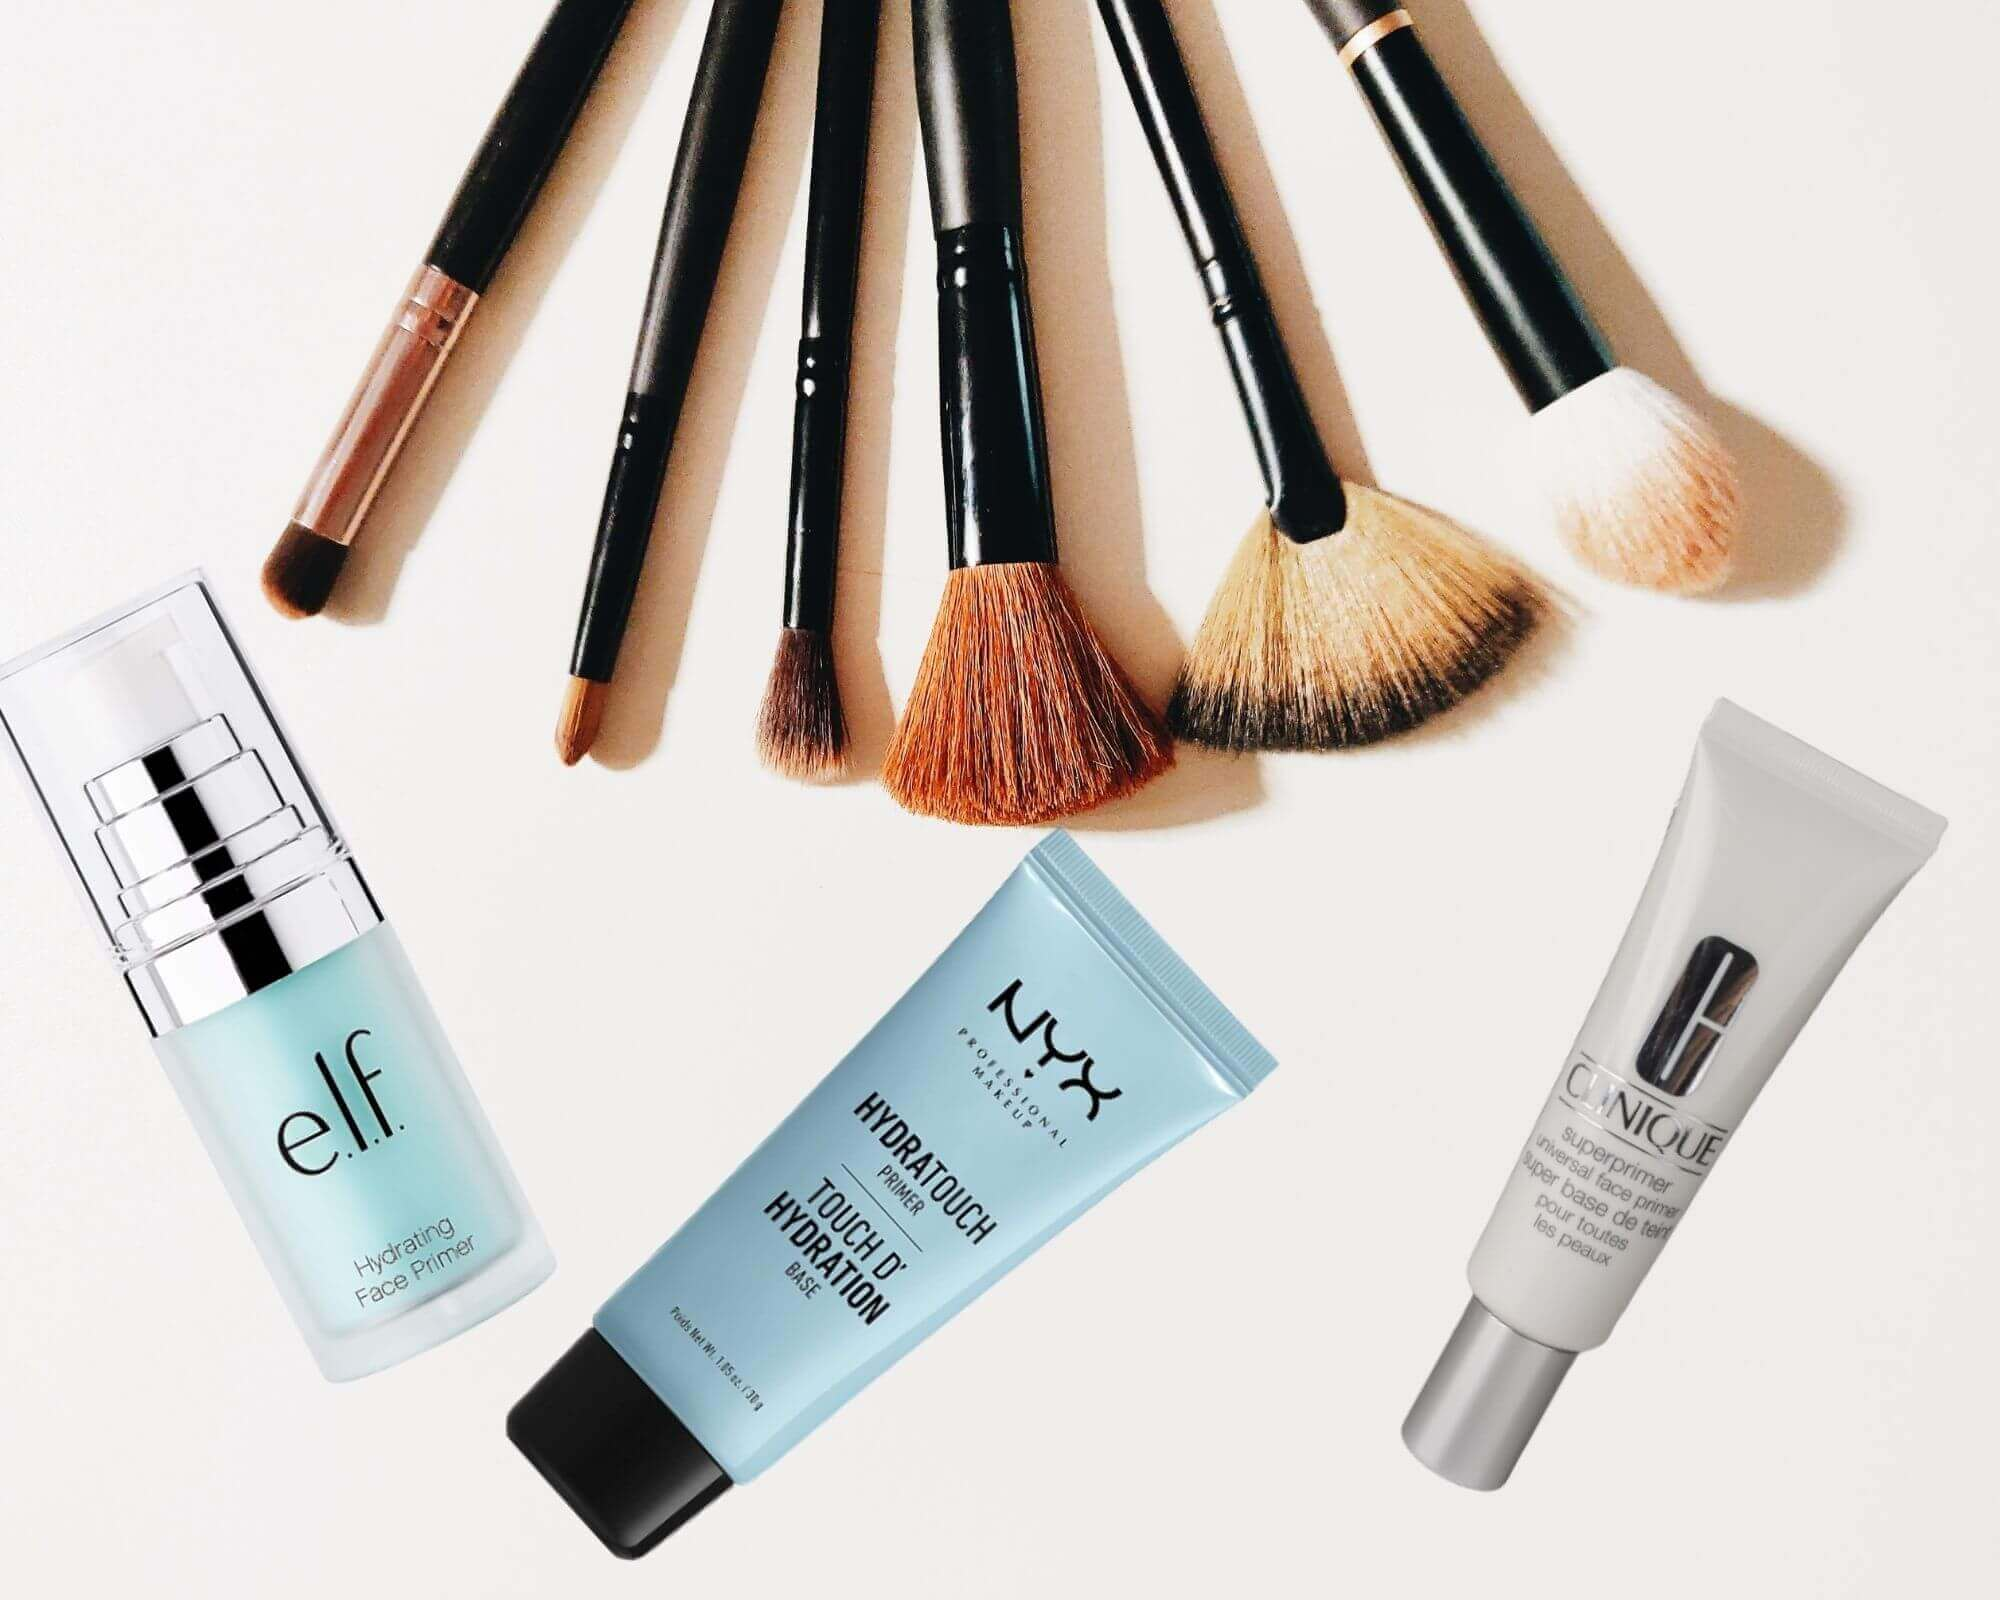 10 BEST HYDRATING PRIMERS FOR DRY SKIN